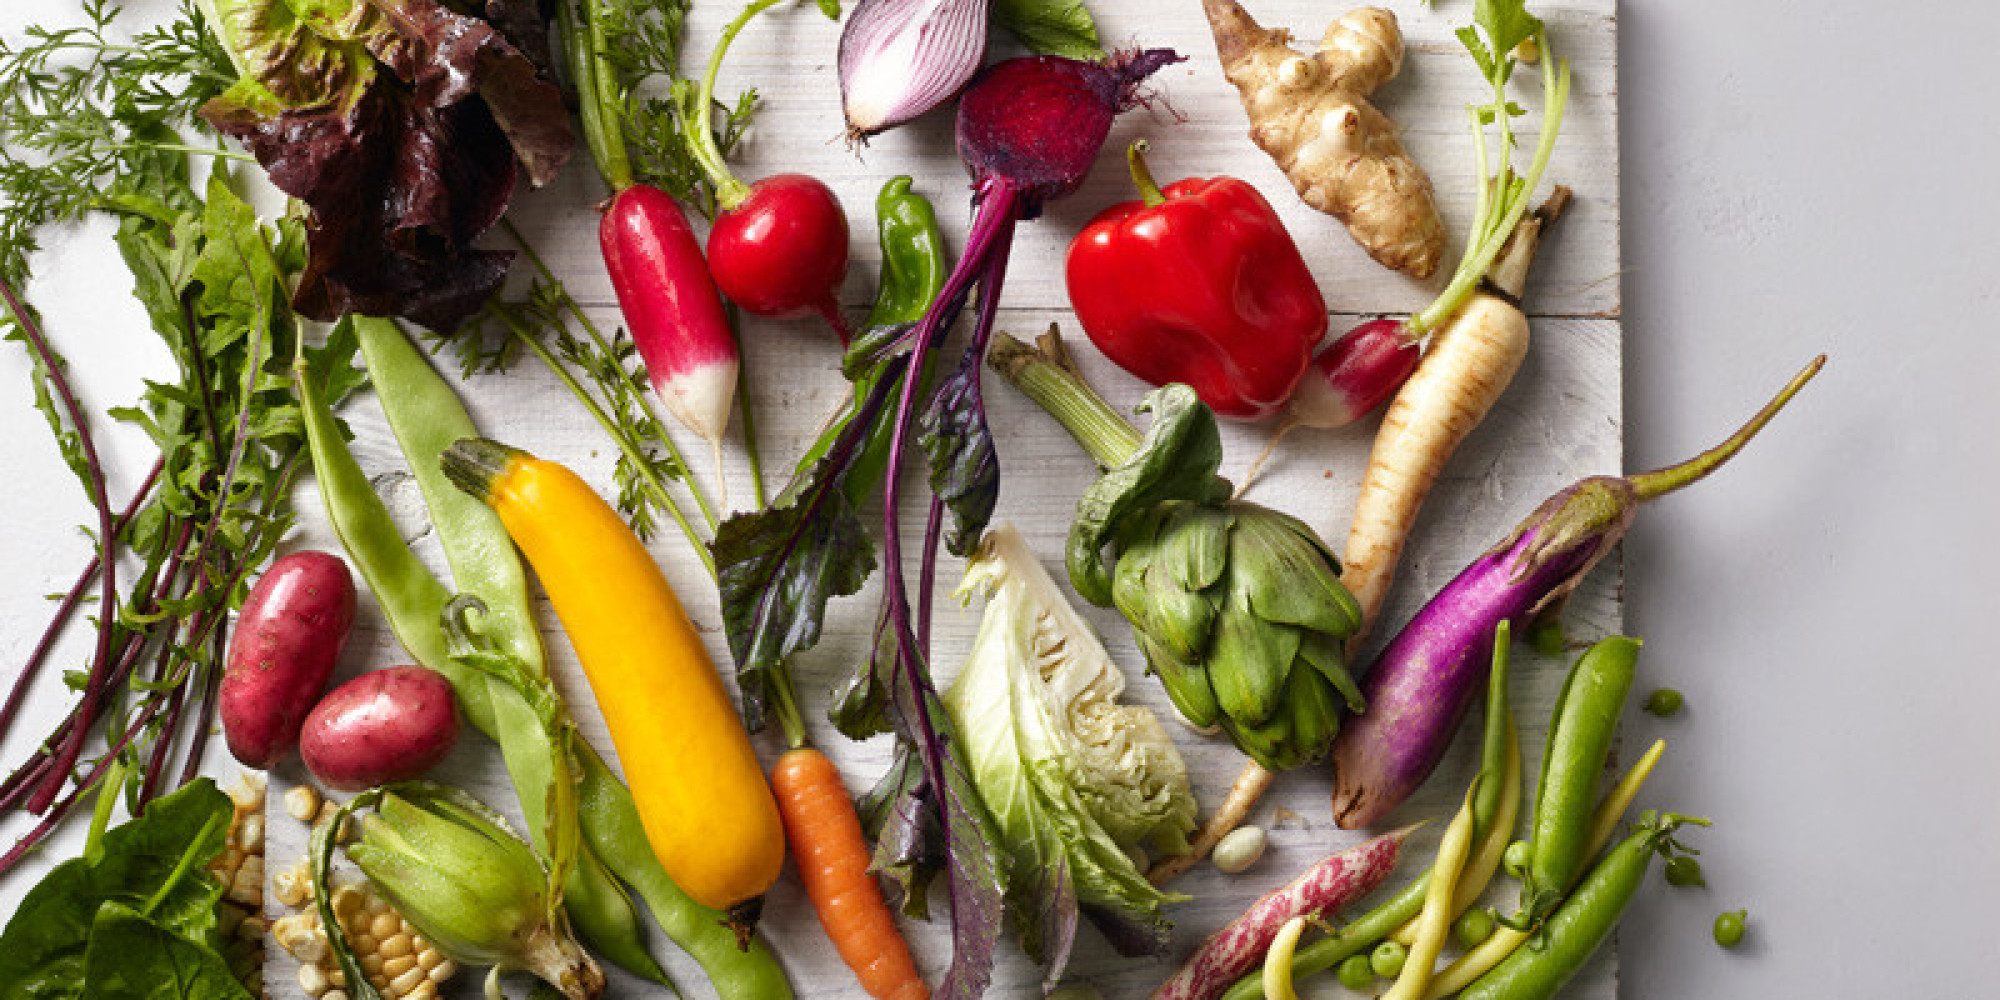 10 Essential Rules To Healthy Eating | HuffPost